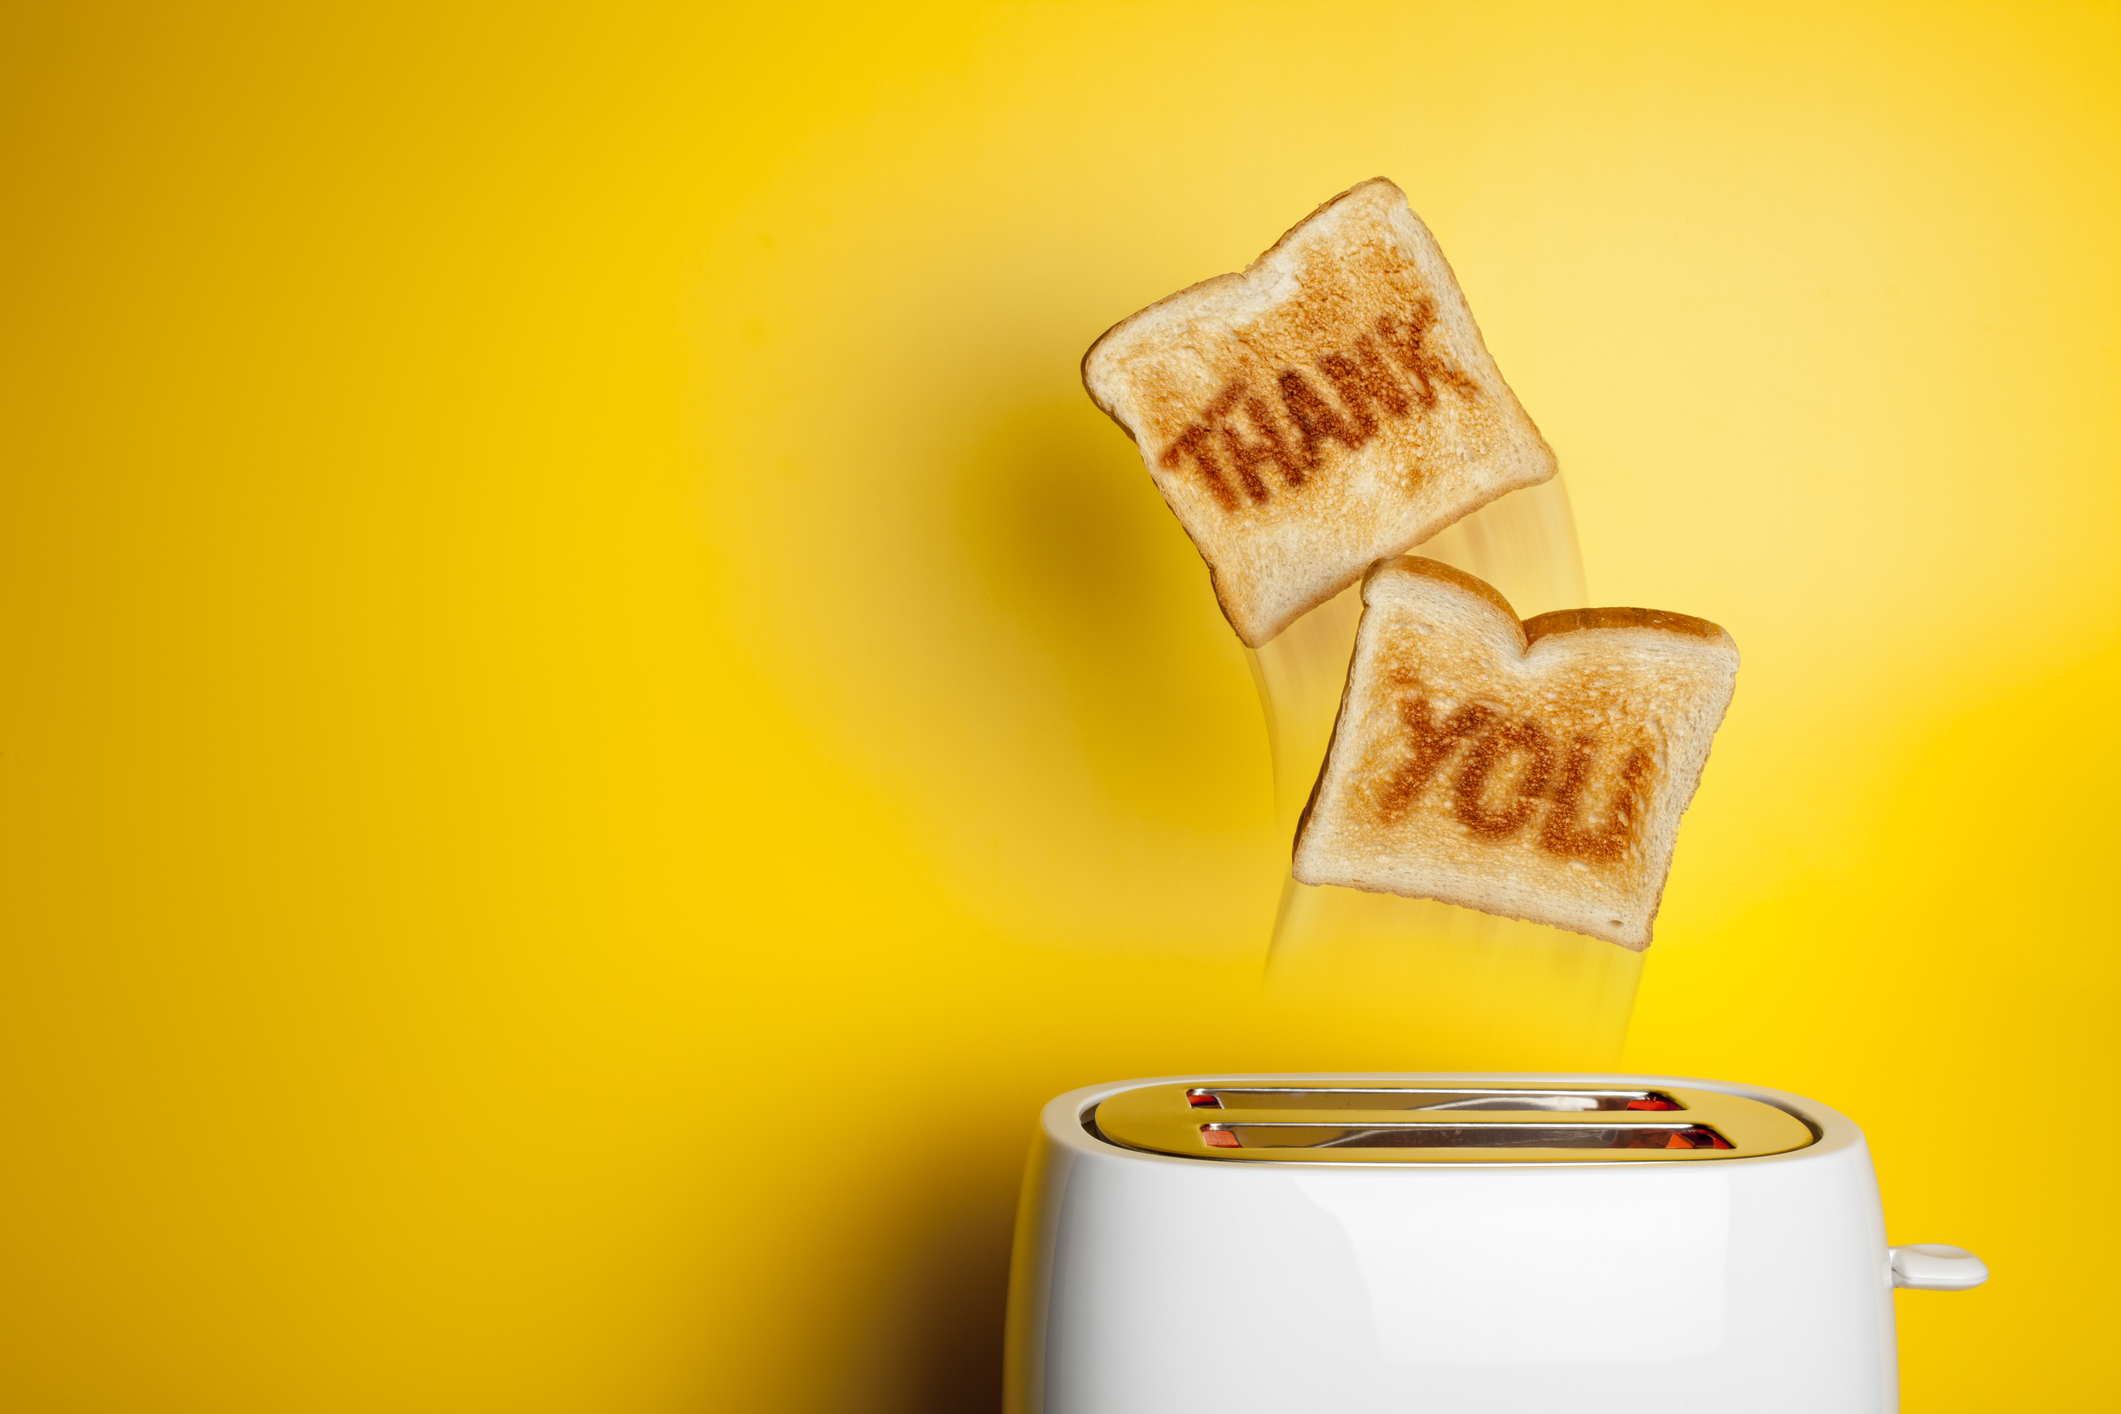 Concept photograph of fresh toast bread jumping out of the toaster.